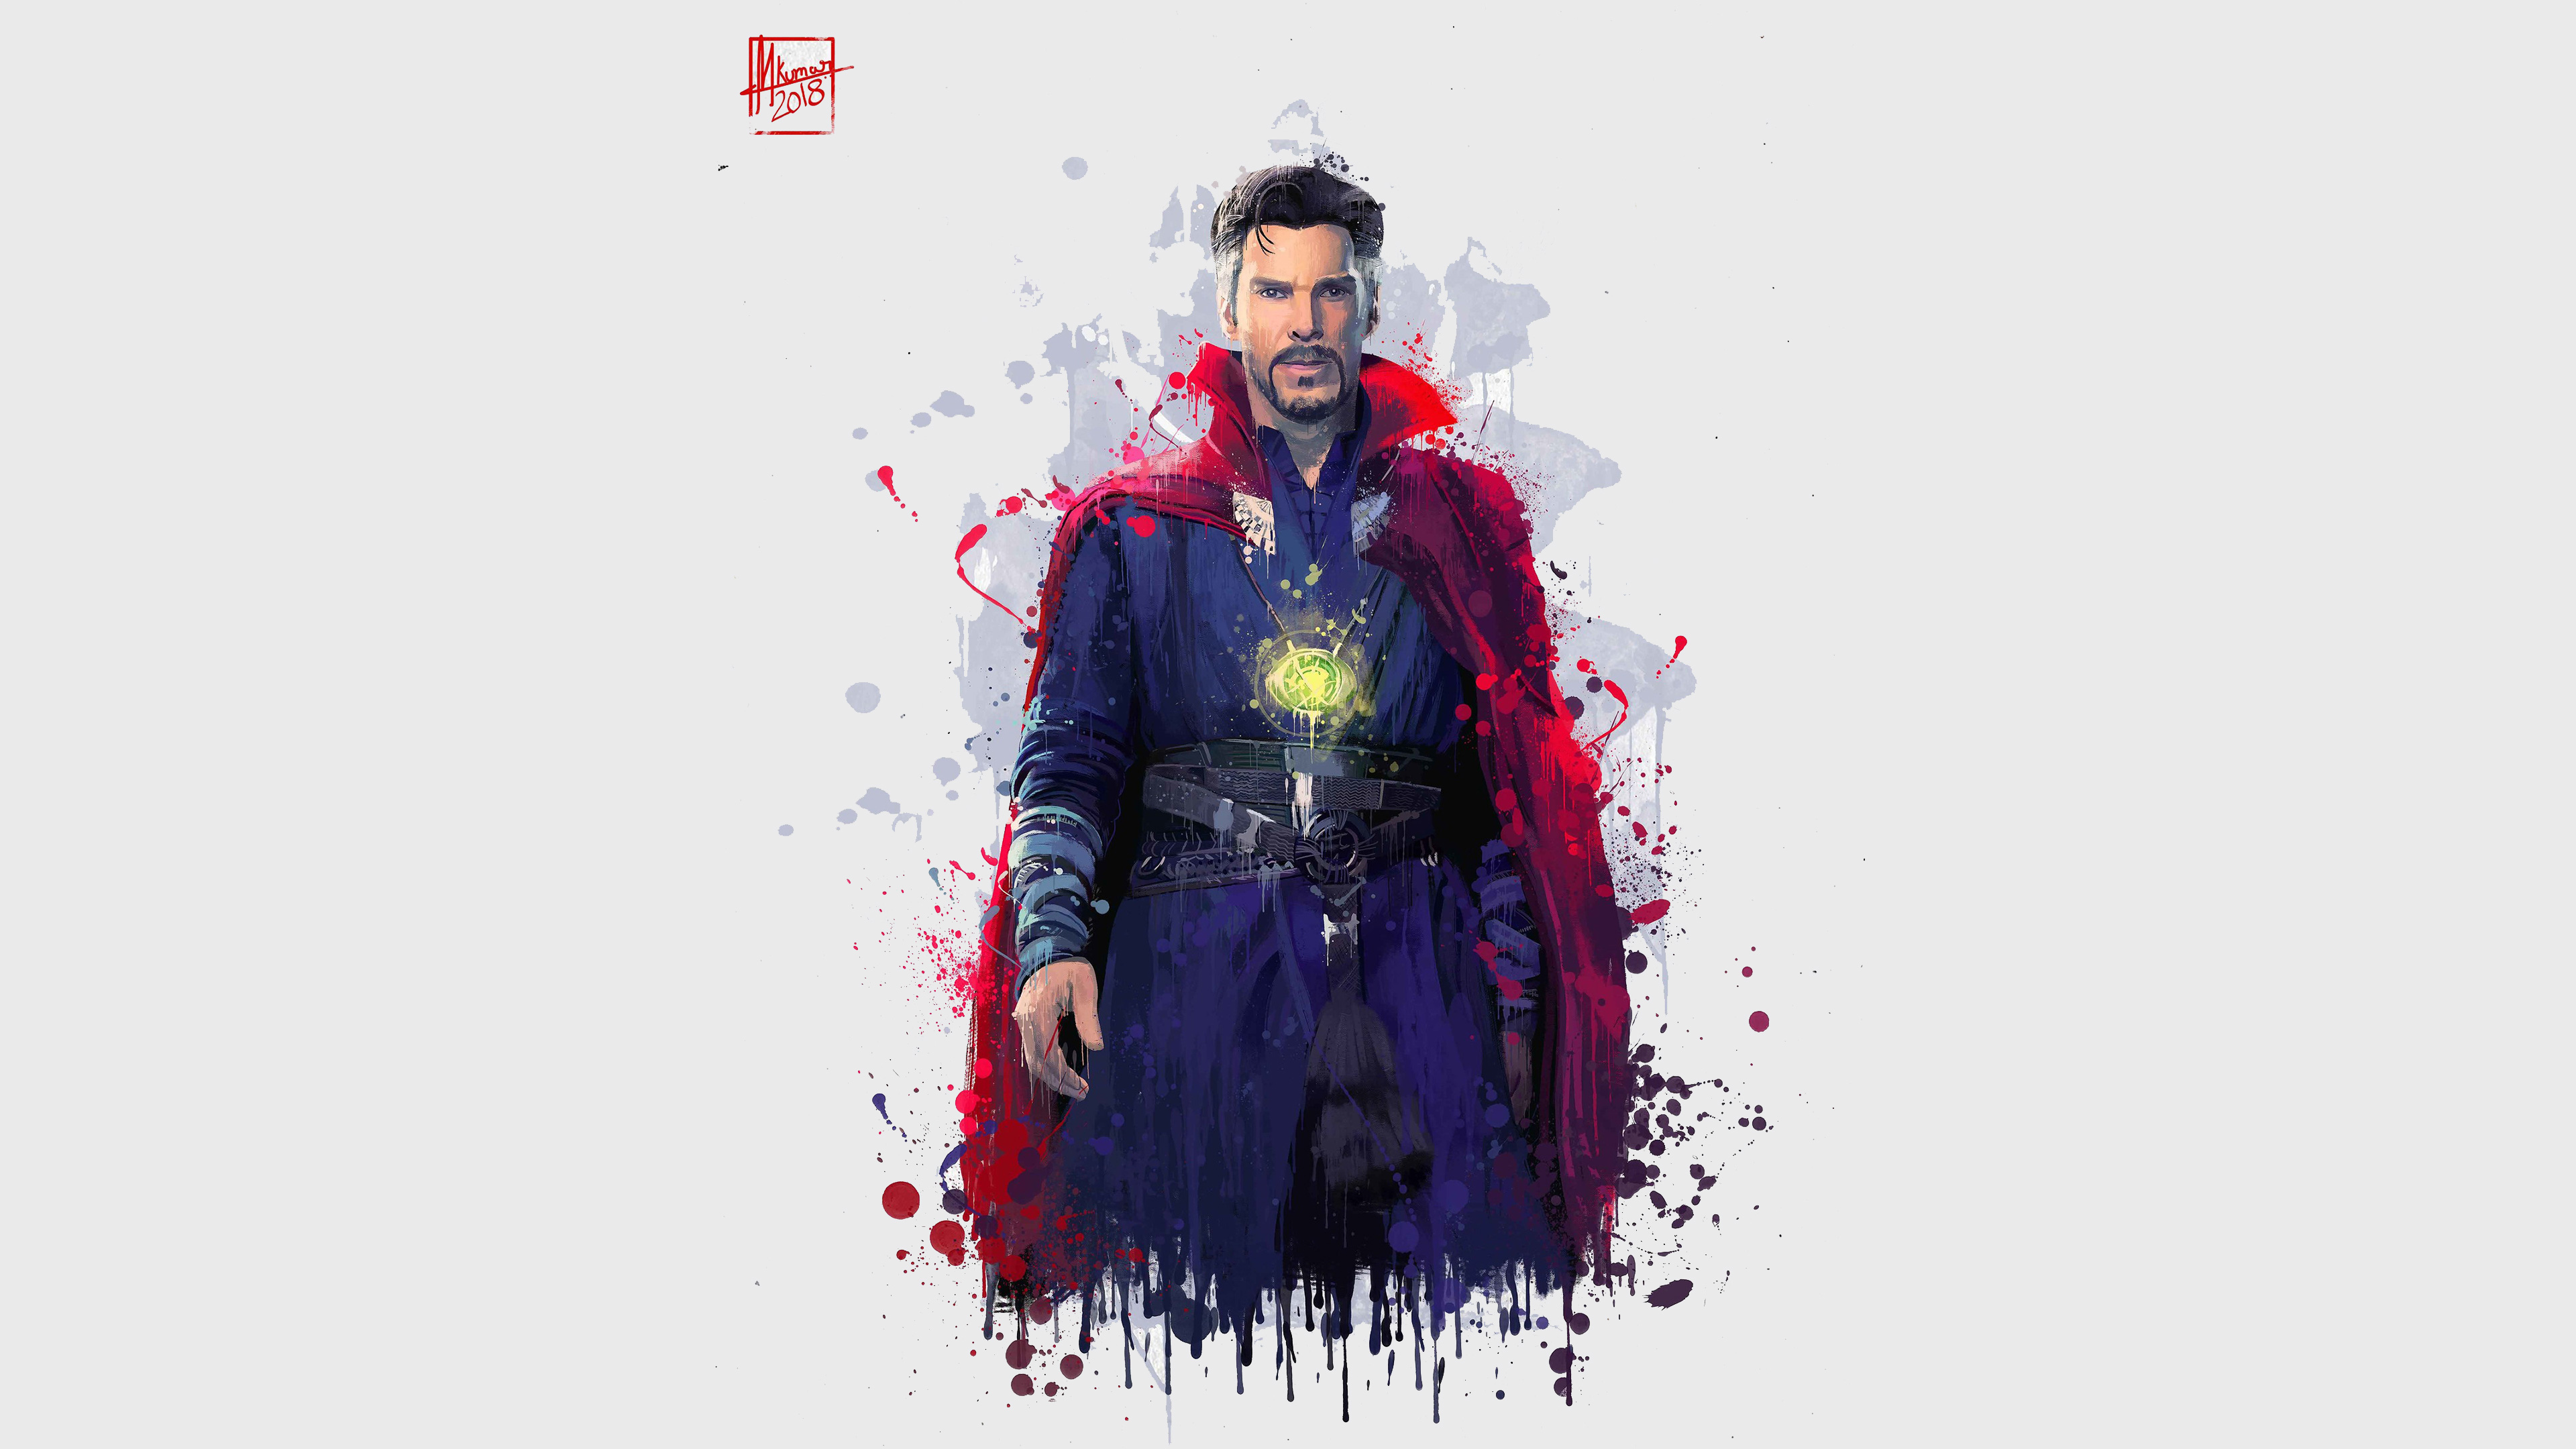 doctor strange in avengers infinity war 2018 4k artwork kw.jpg